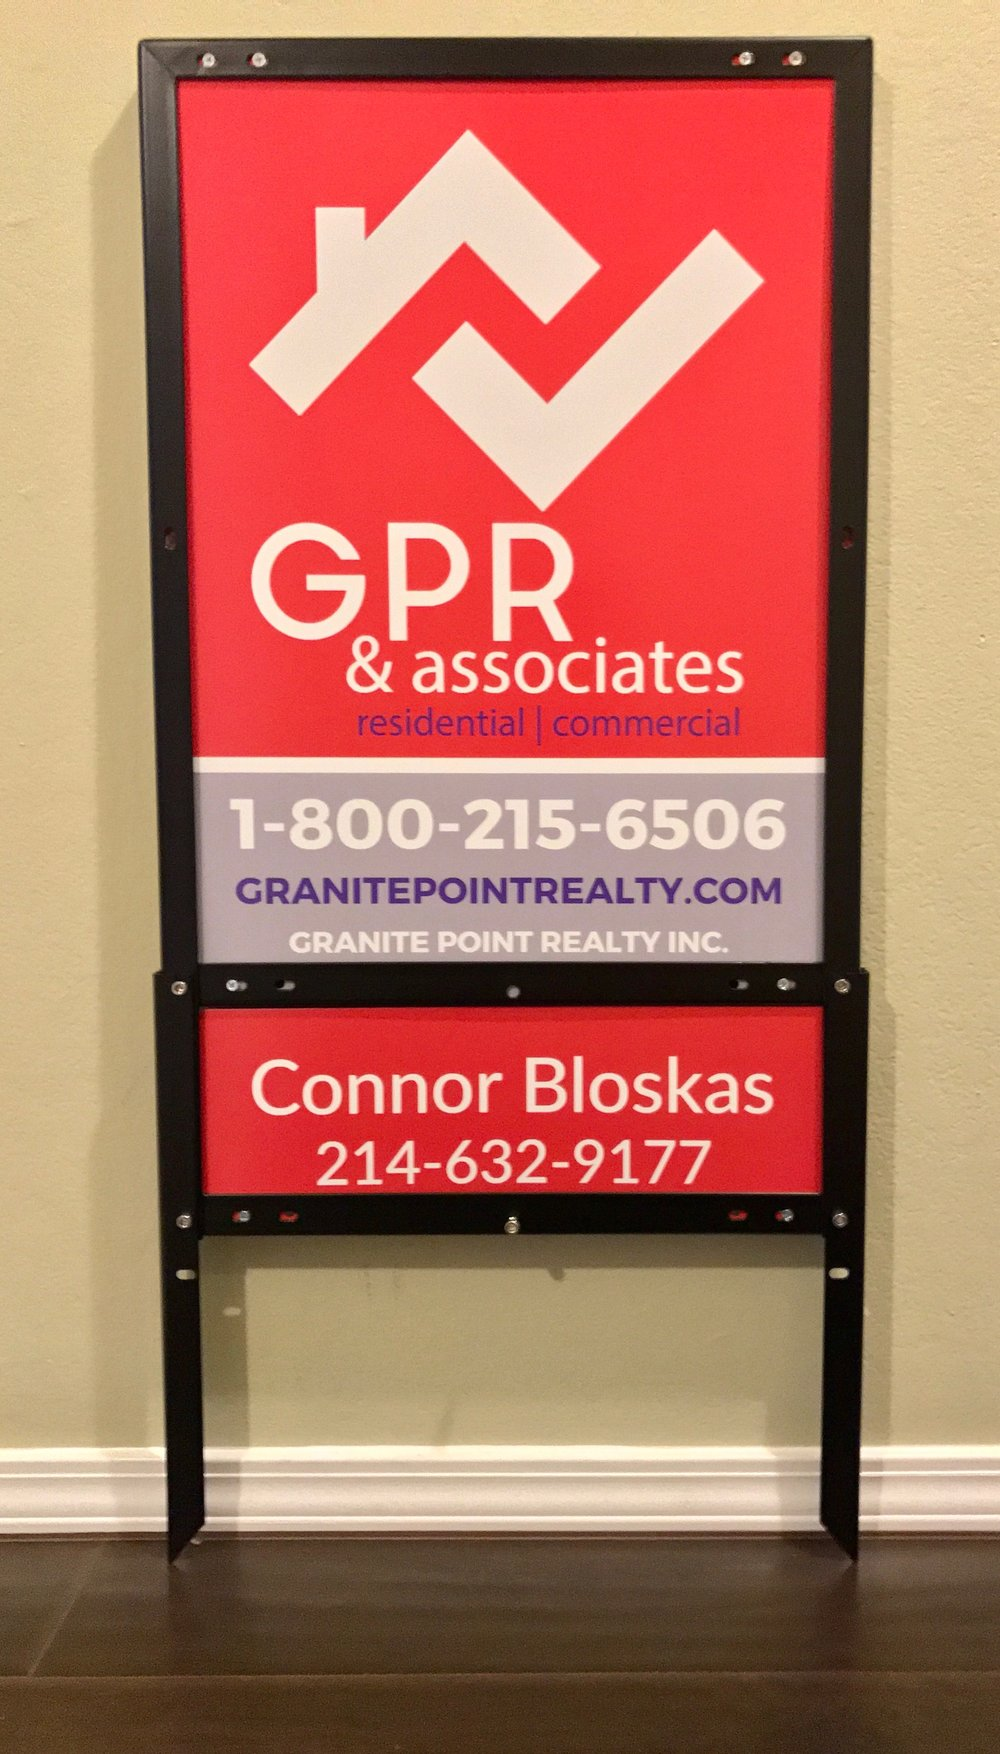 Granite Point Realty 24%22 x 18%22 Panel & 6%22 x 18%22 Custom Aluminum Rider & EZ Frame.jpeg